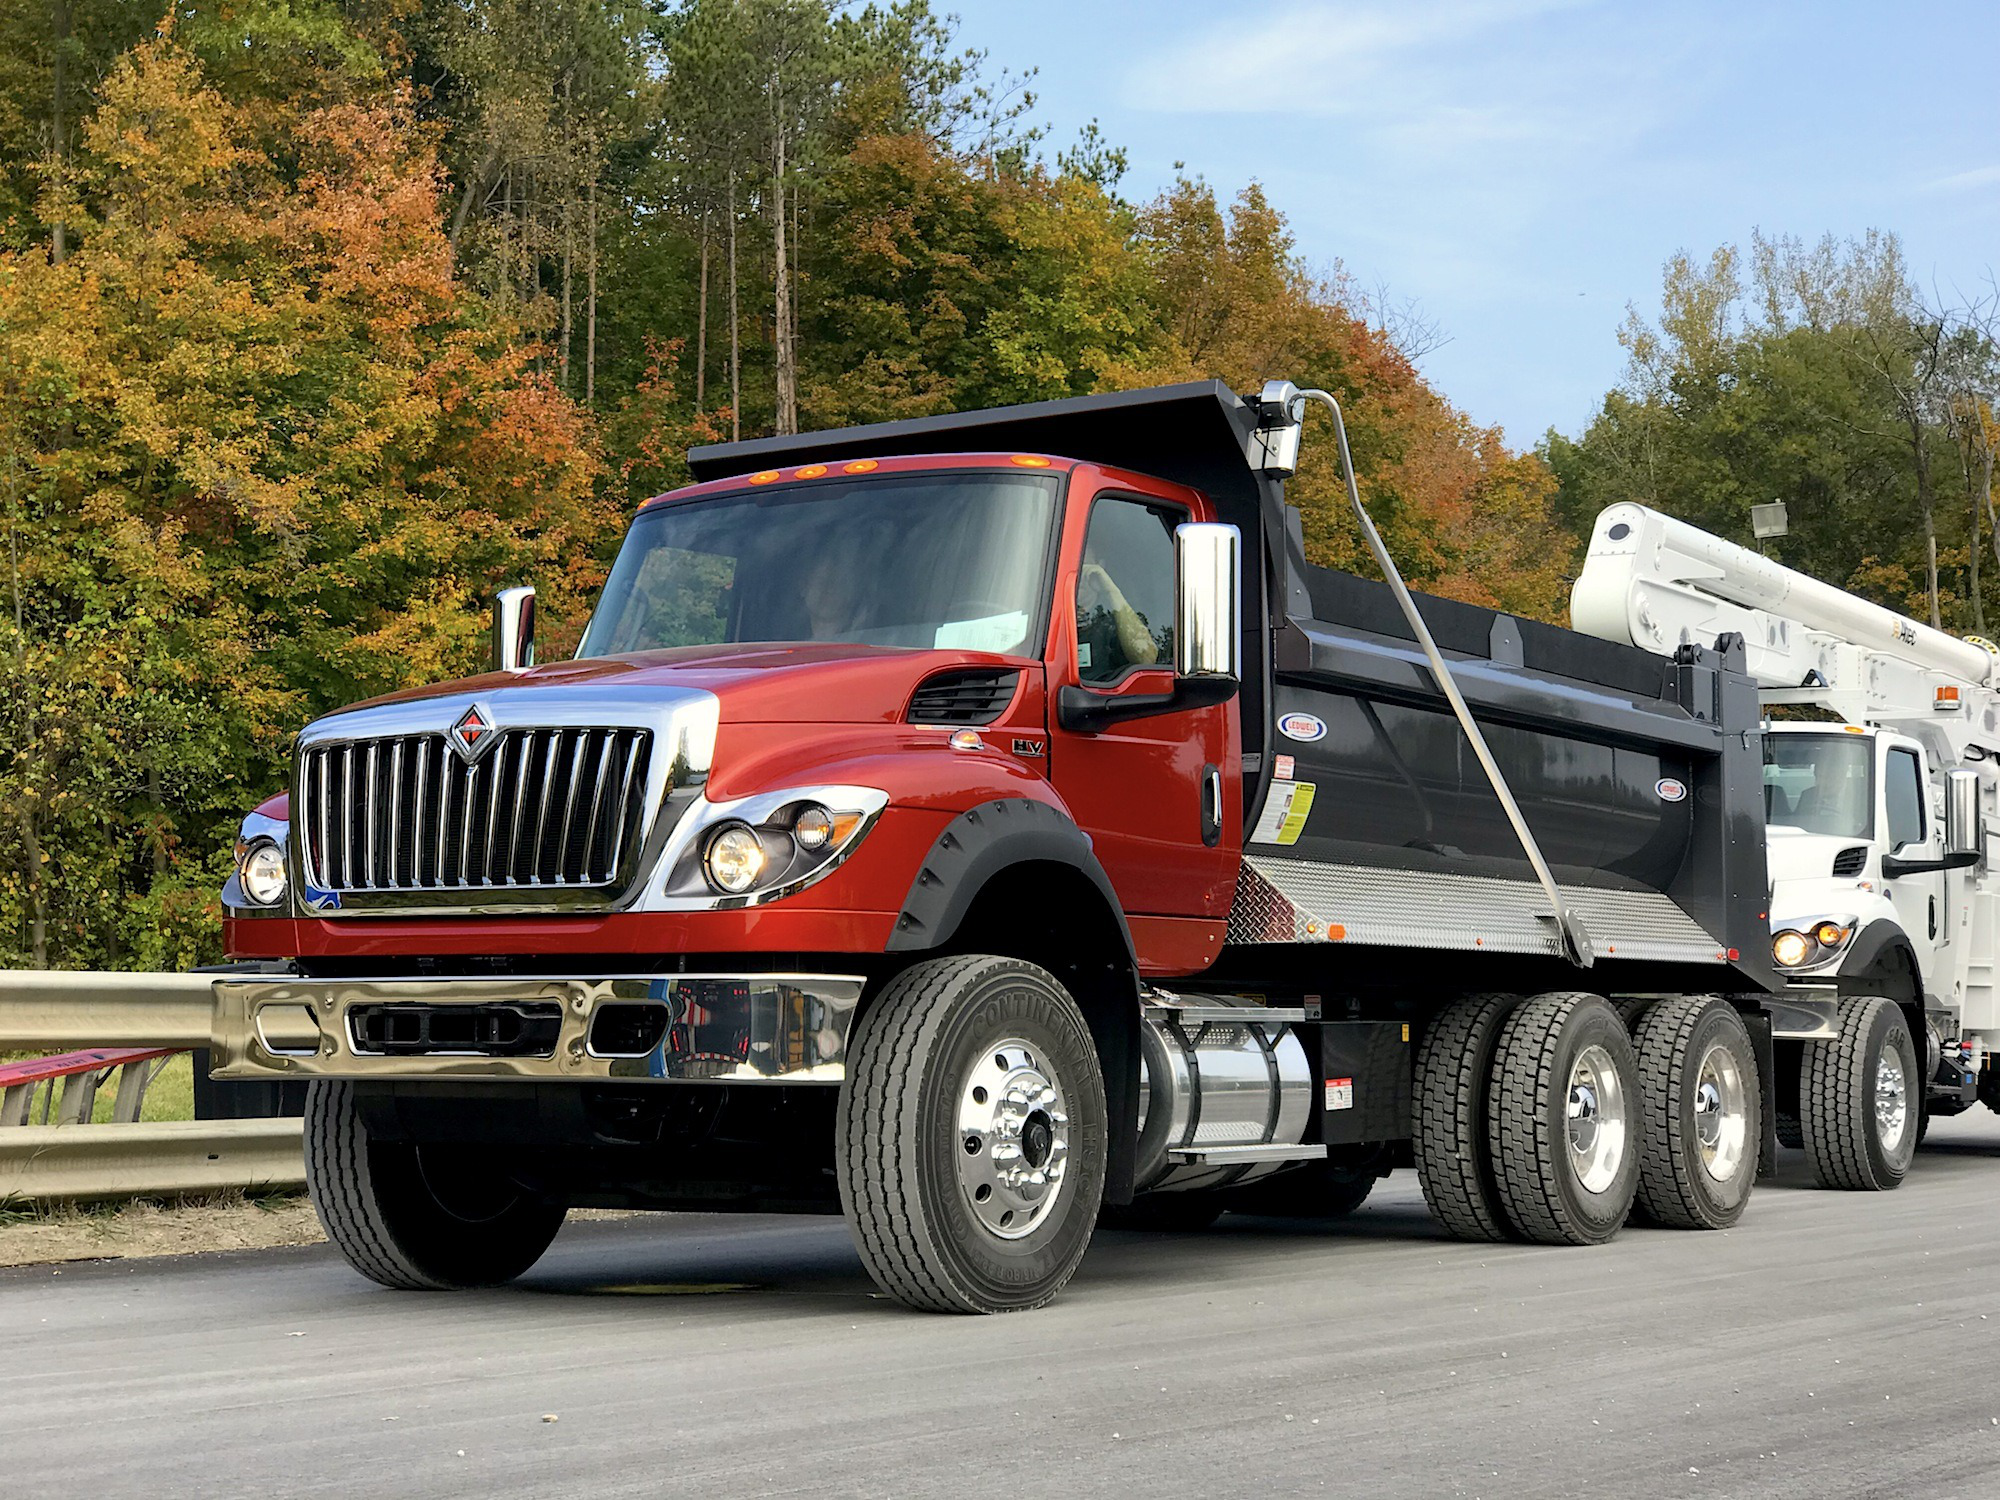 First Look: Navistar's HV Series replaces WorkStar with